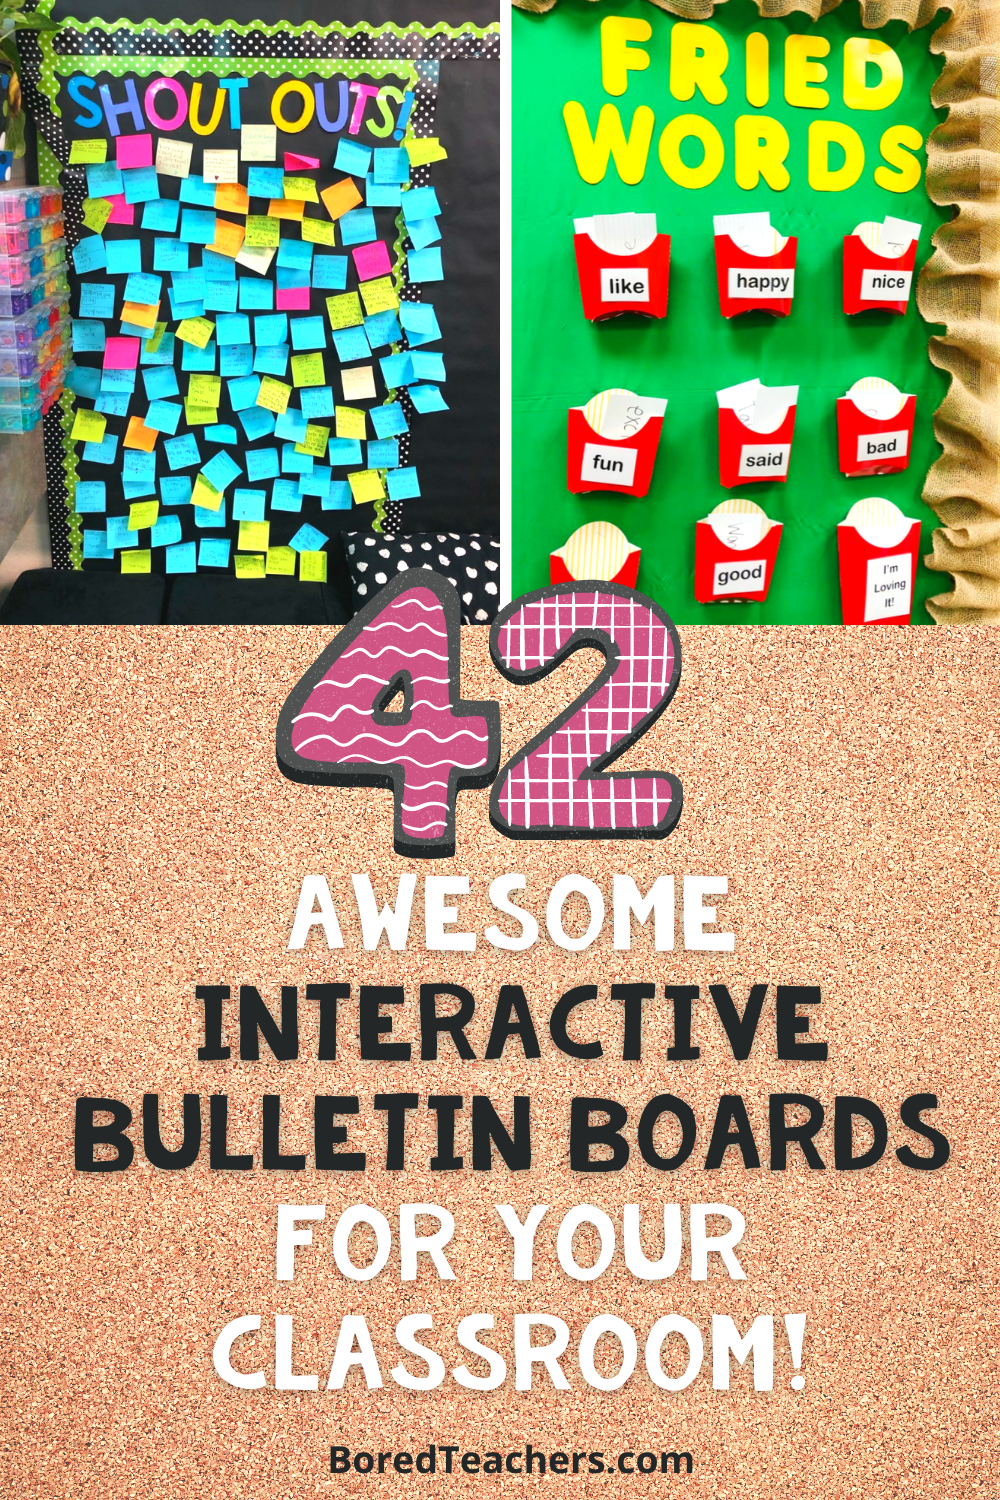 awesome Interactive Bulletin Boards for Your Classroom!